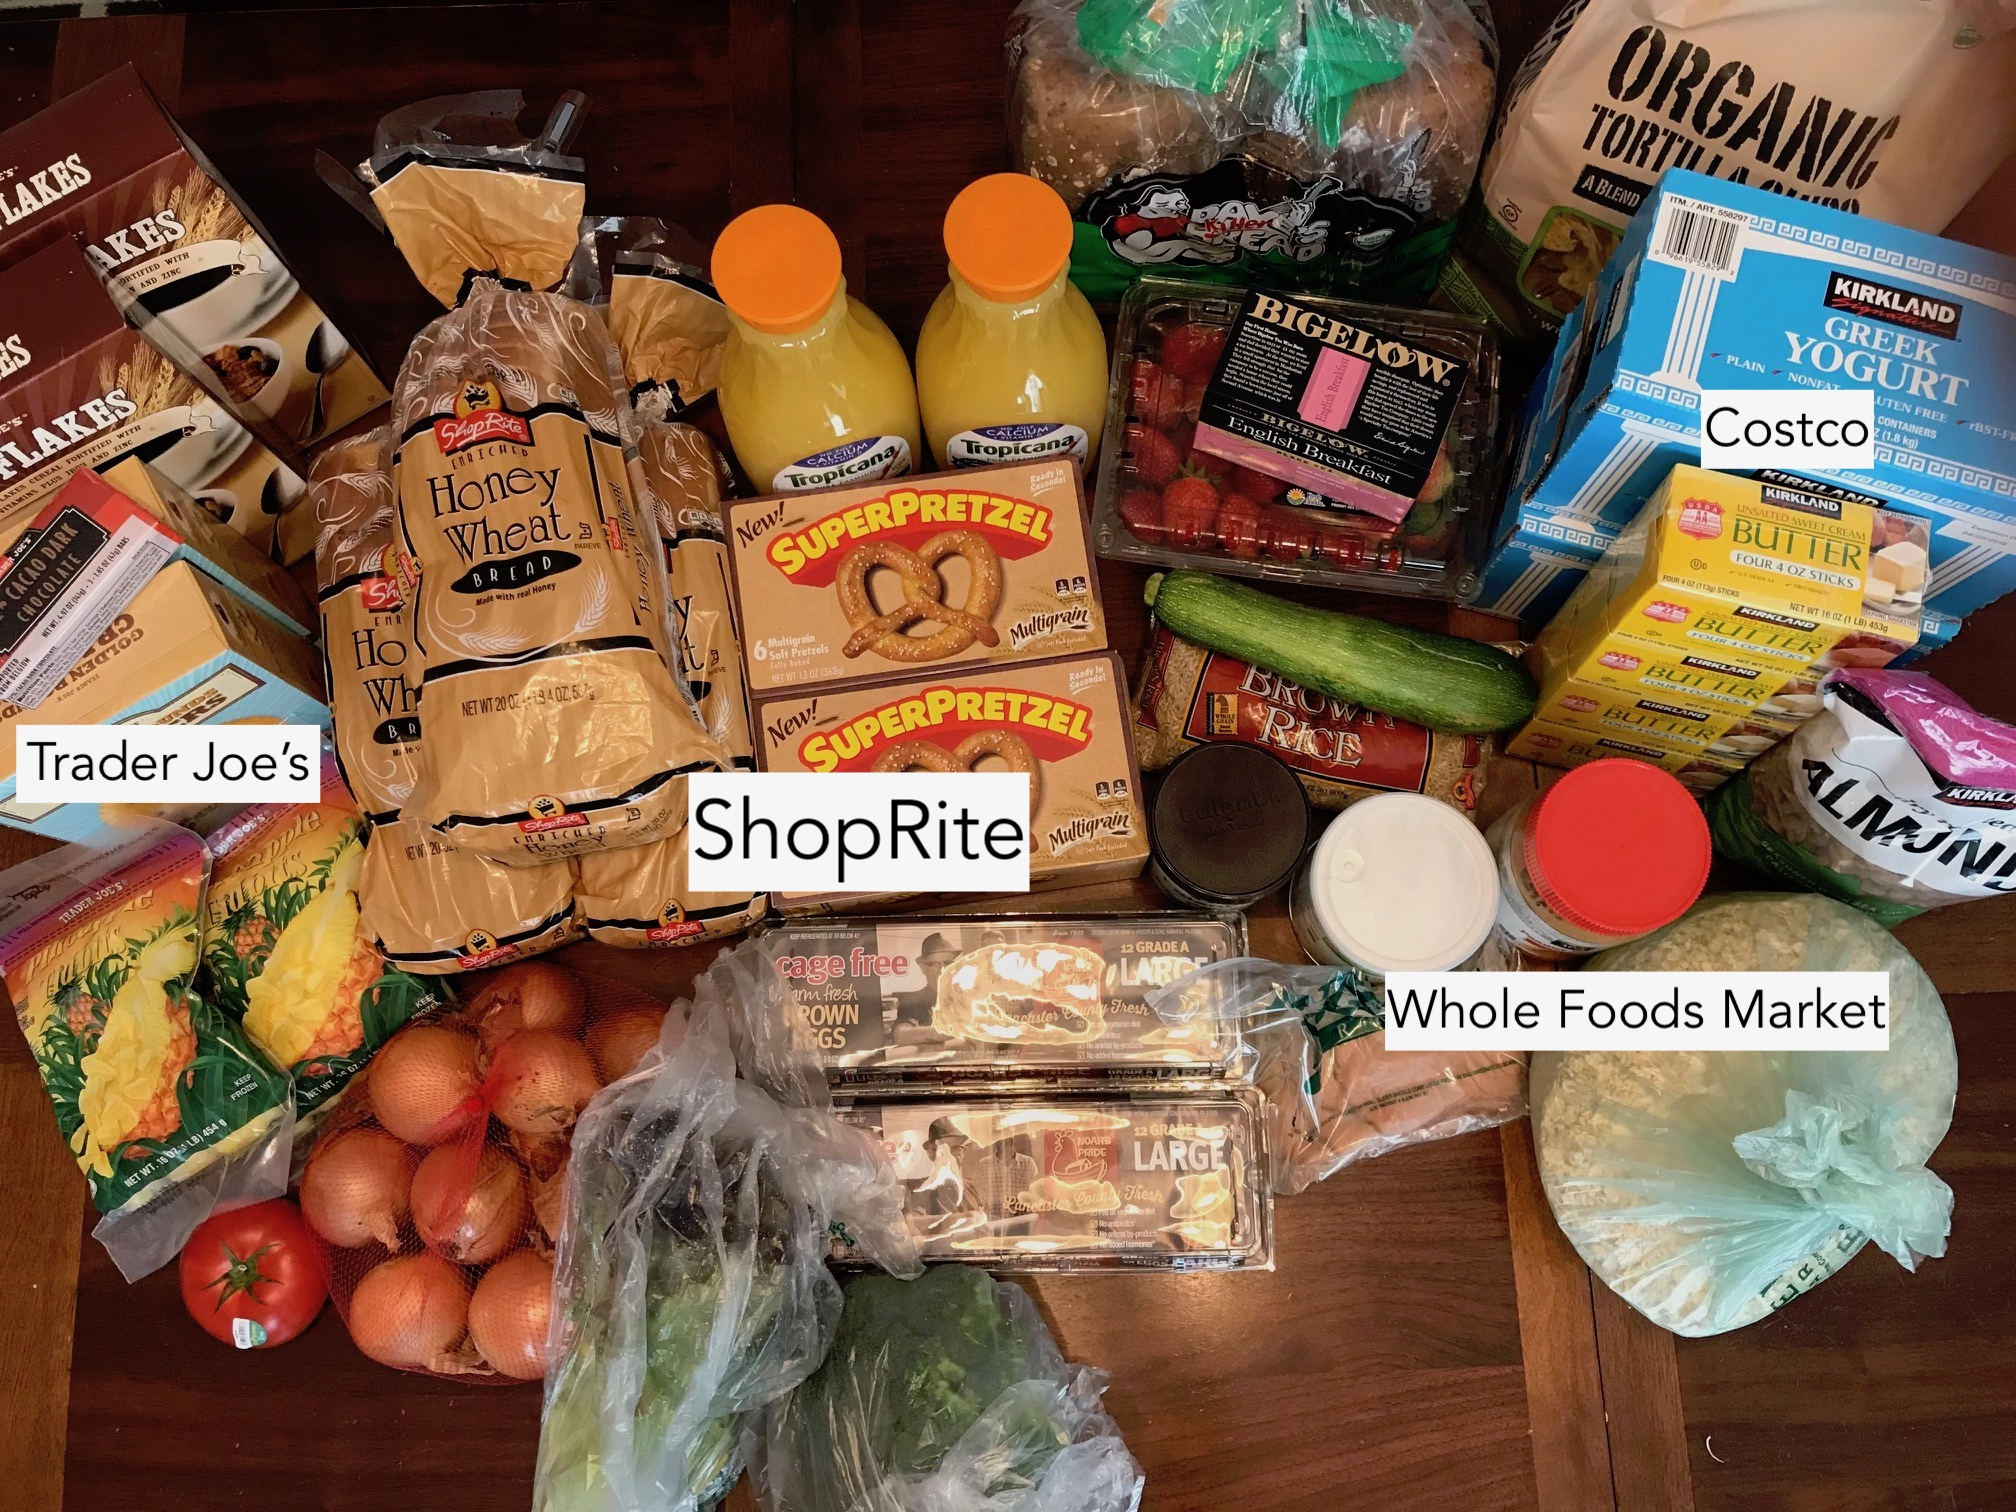 Call Me Crazy... My Weekly Grocery Haul!